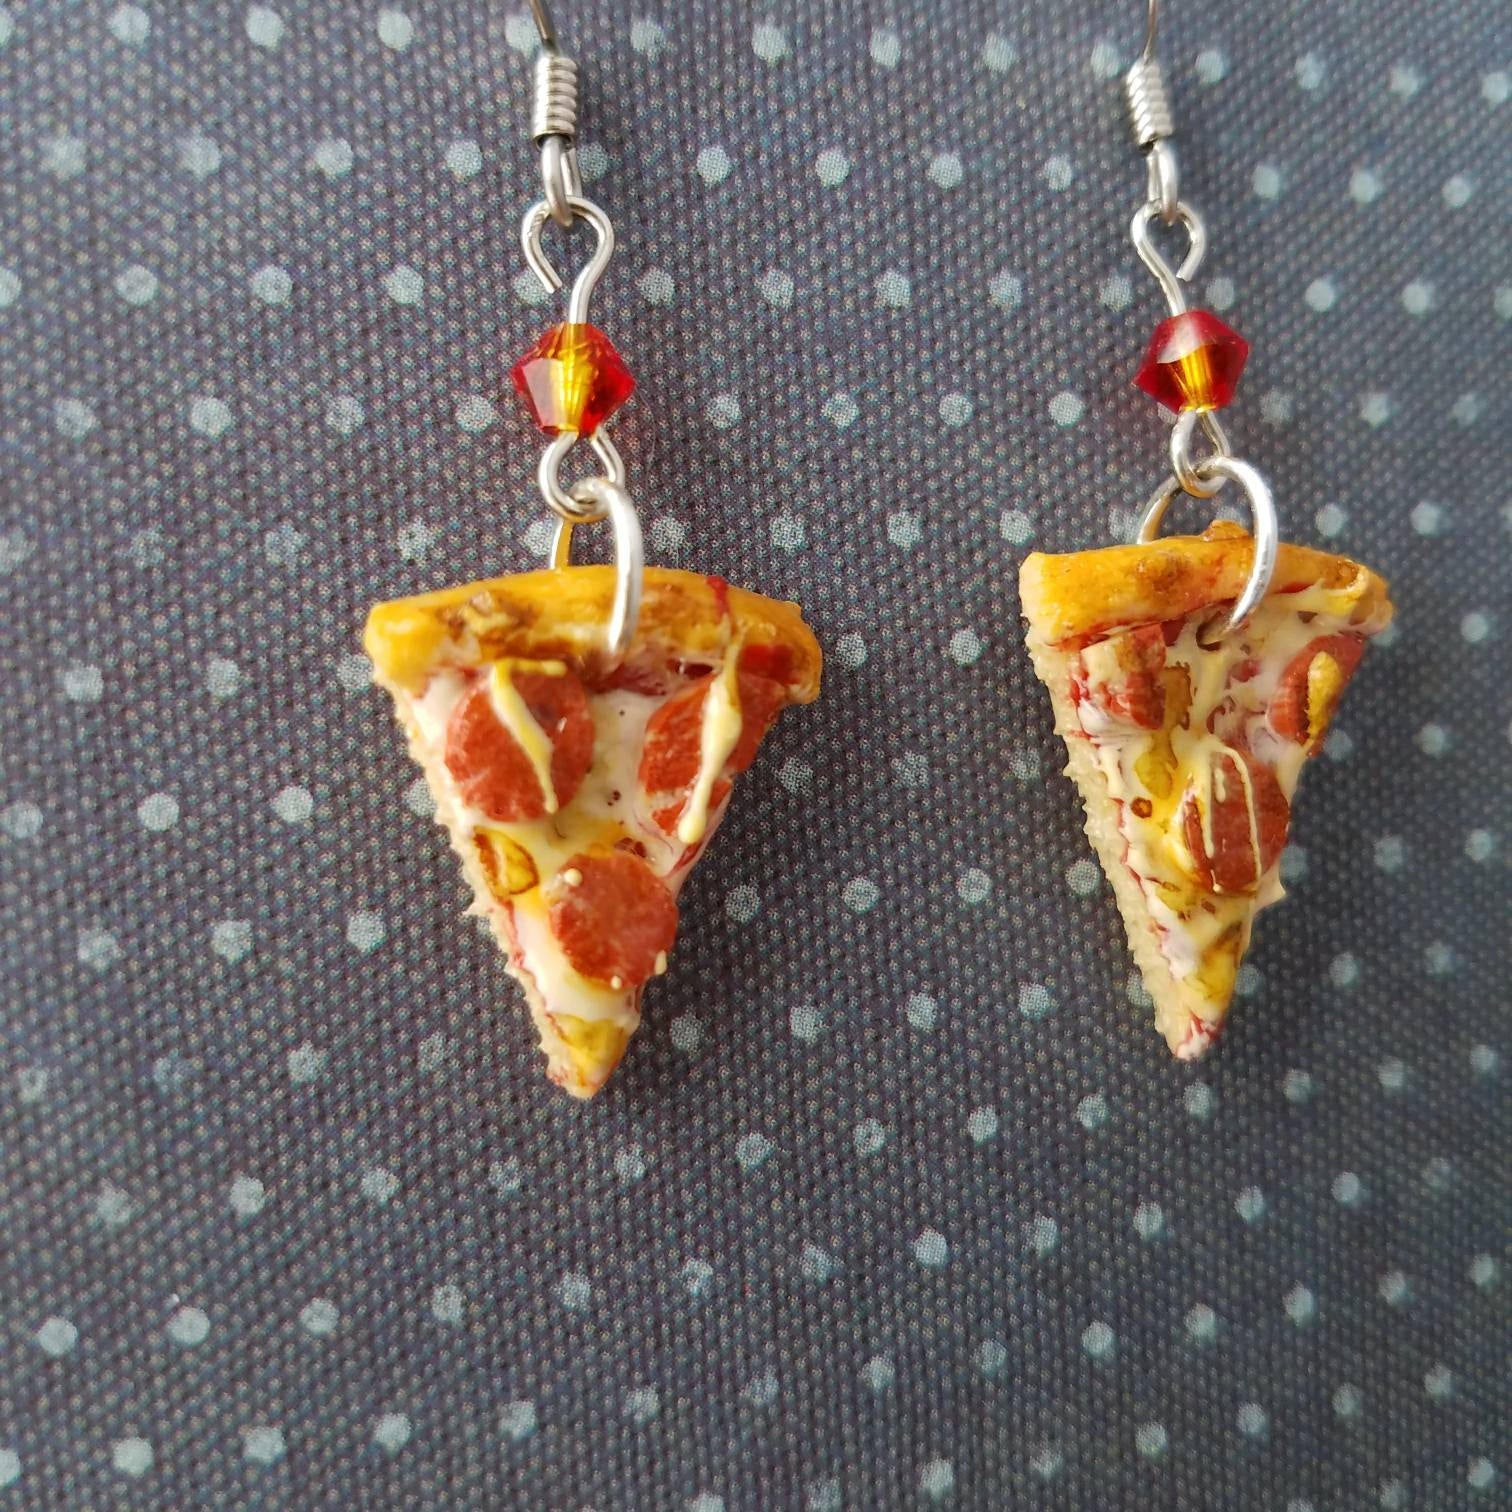 Pepperoni Pizza Earrings